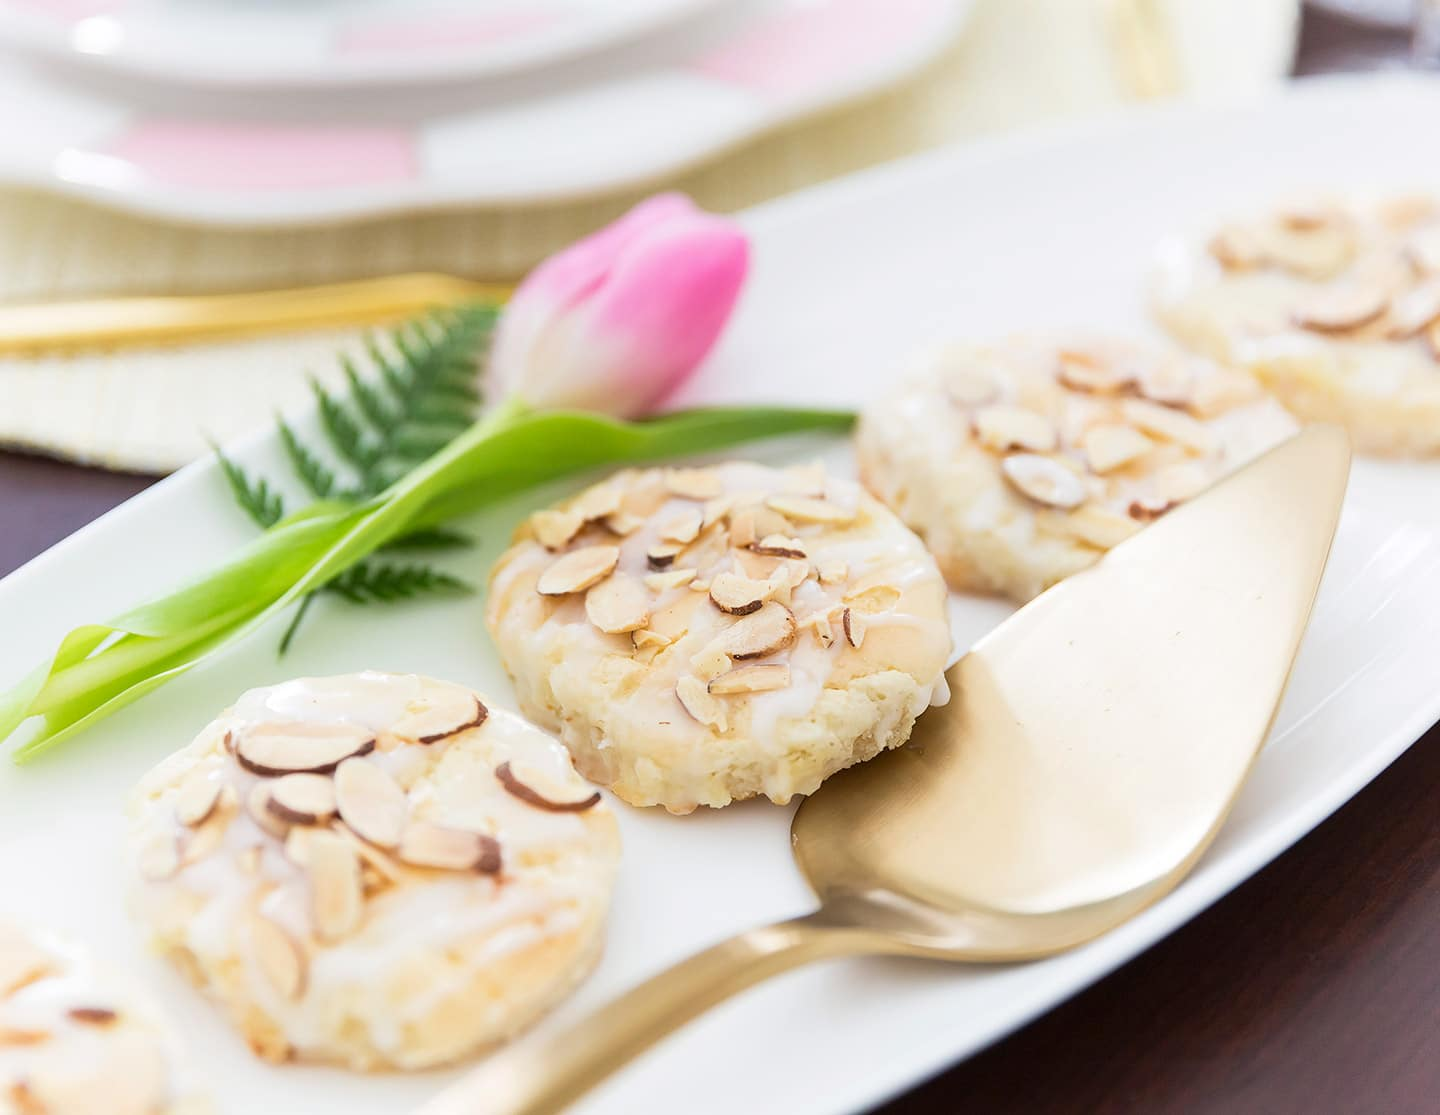 http://pizzazzerie.com/wp-content/uploads/2017/03/almond-pastry-cookies-03.jpg